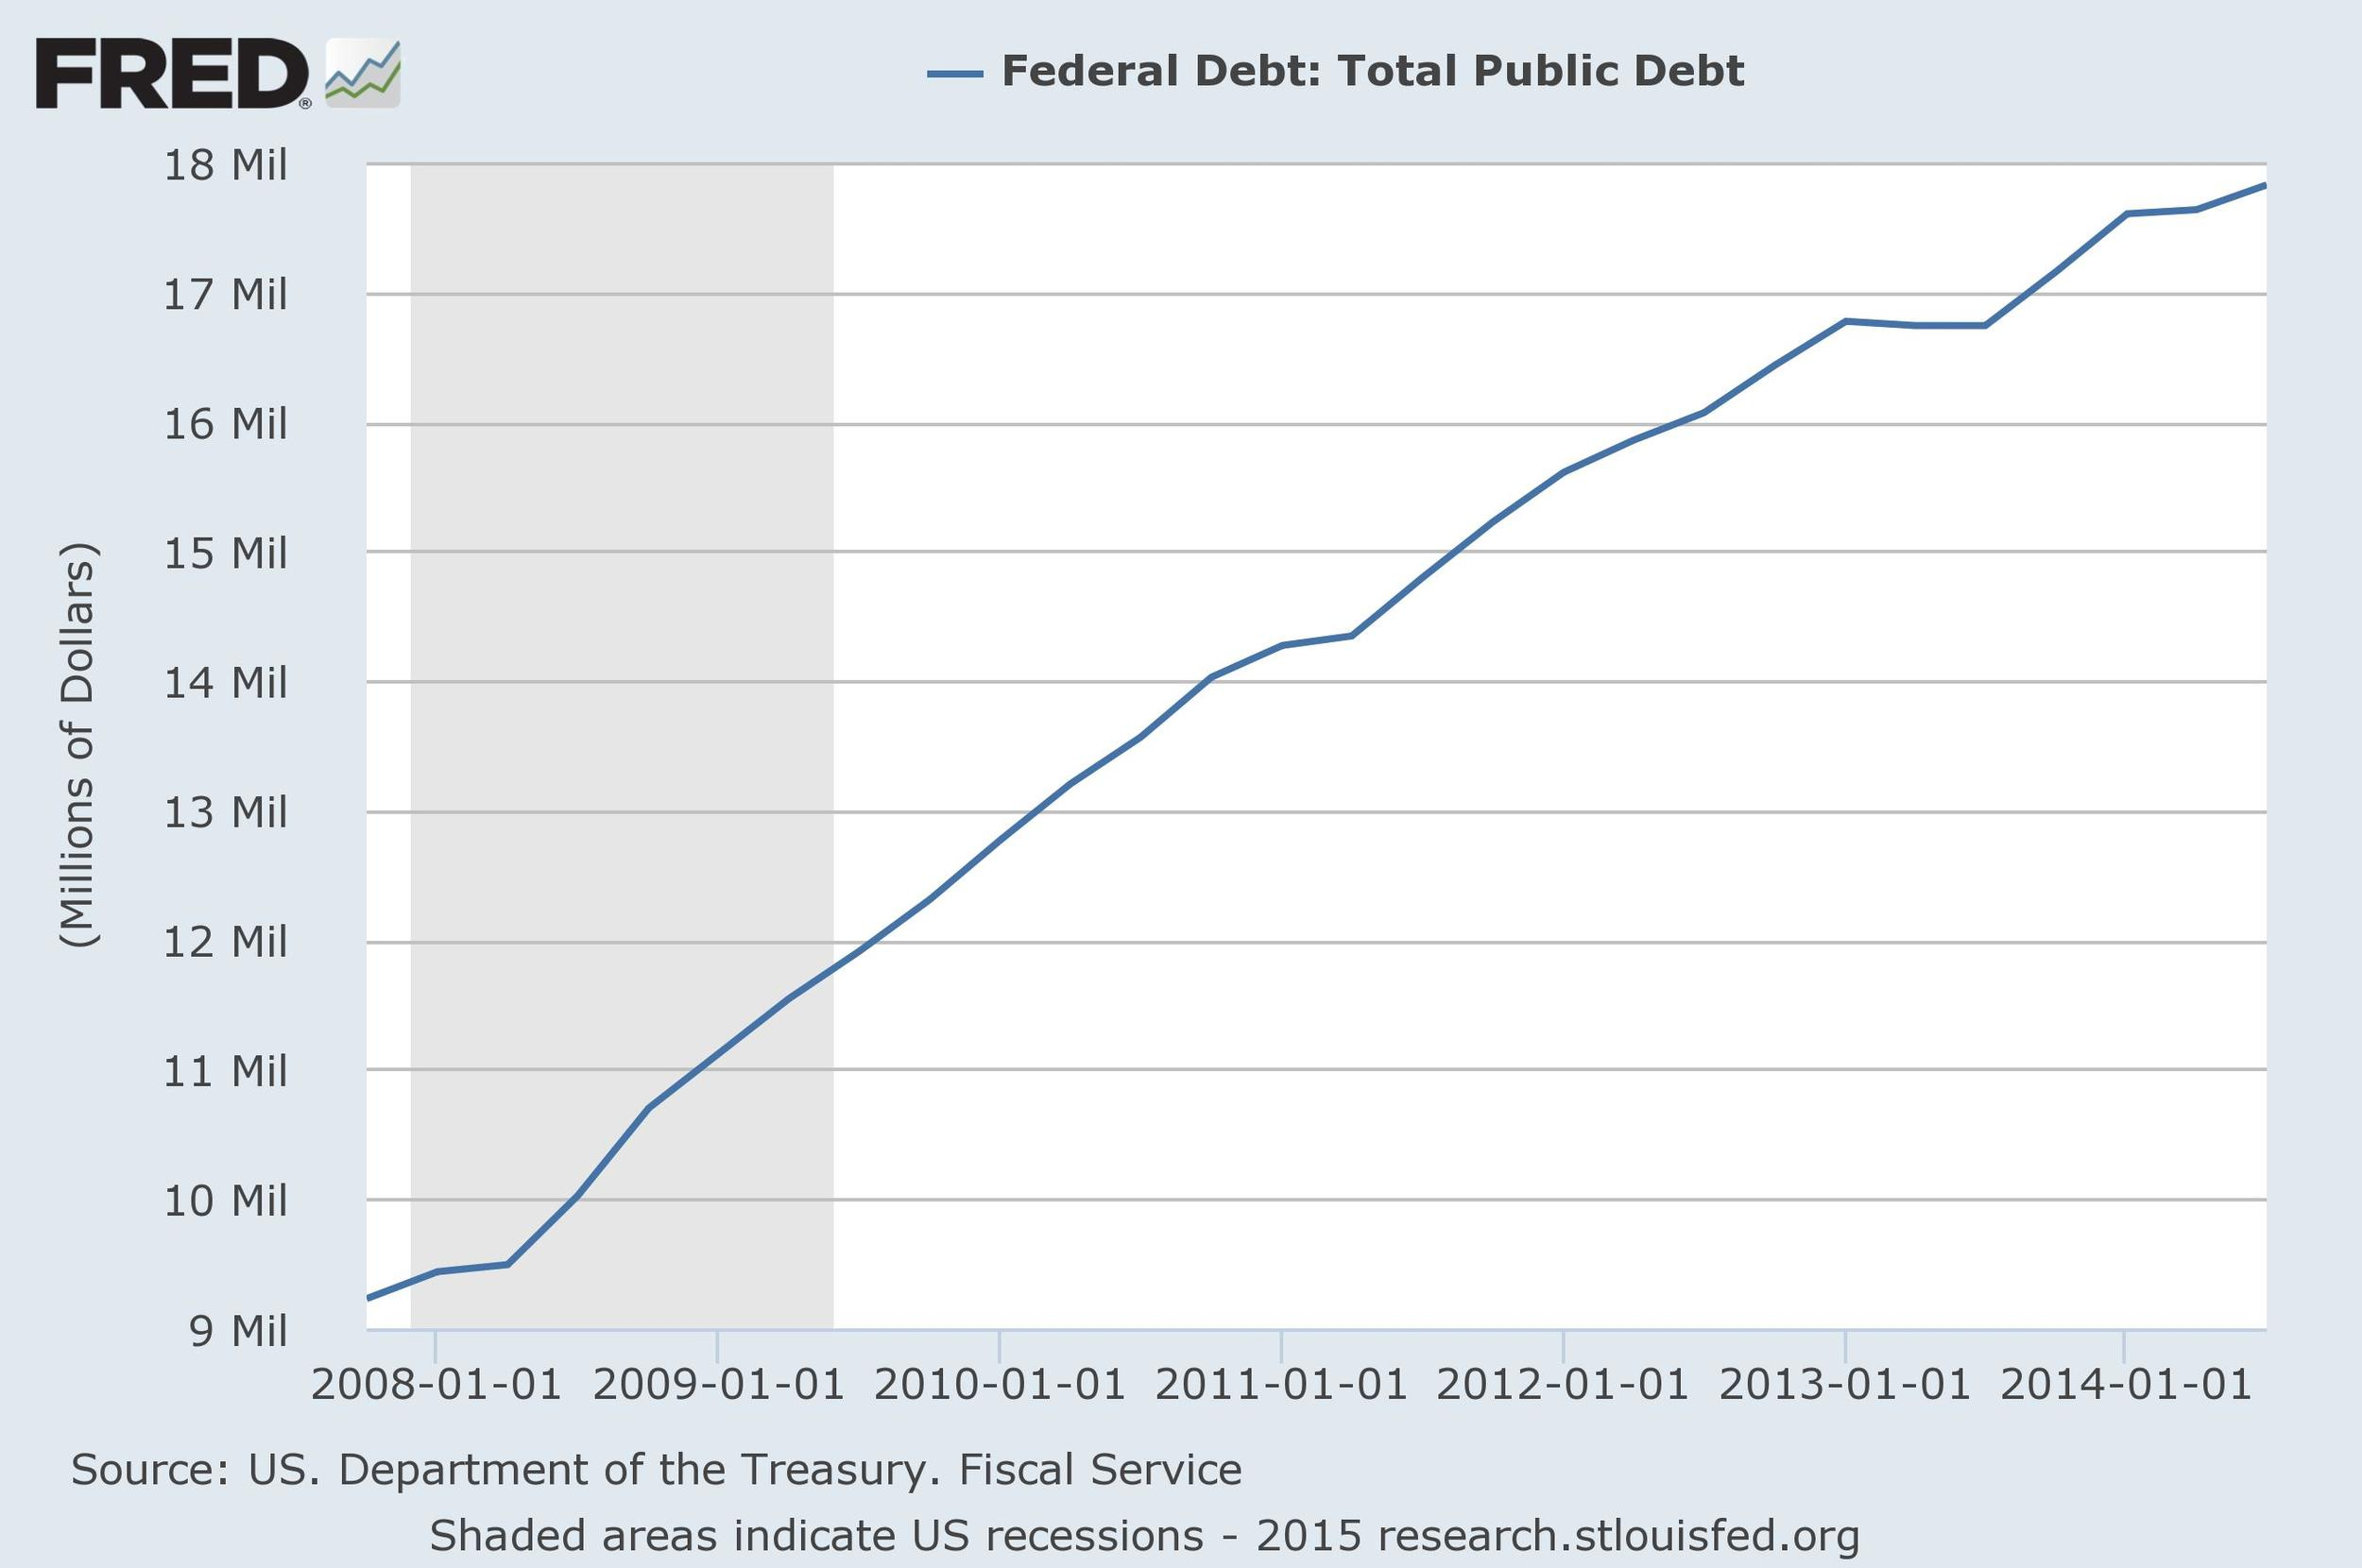 source: U.S. Department of the Treasury, St. Louis Fed